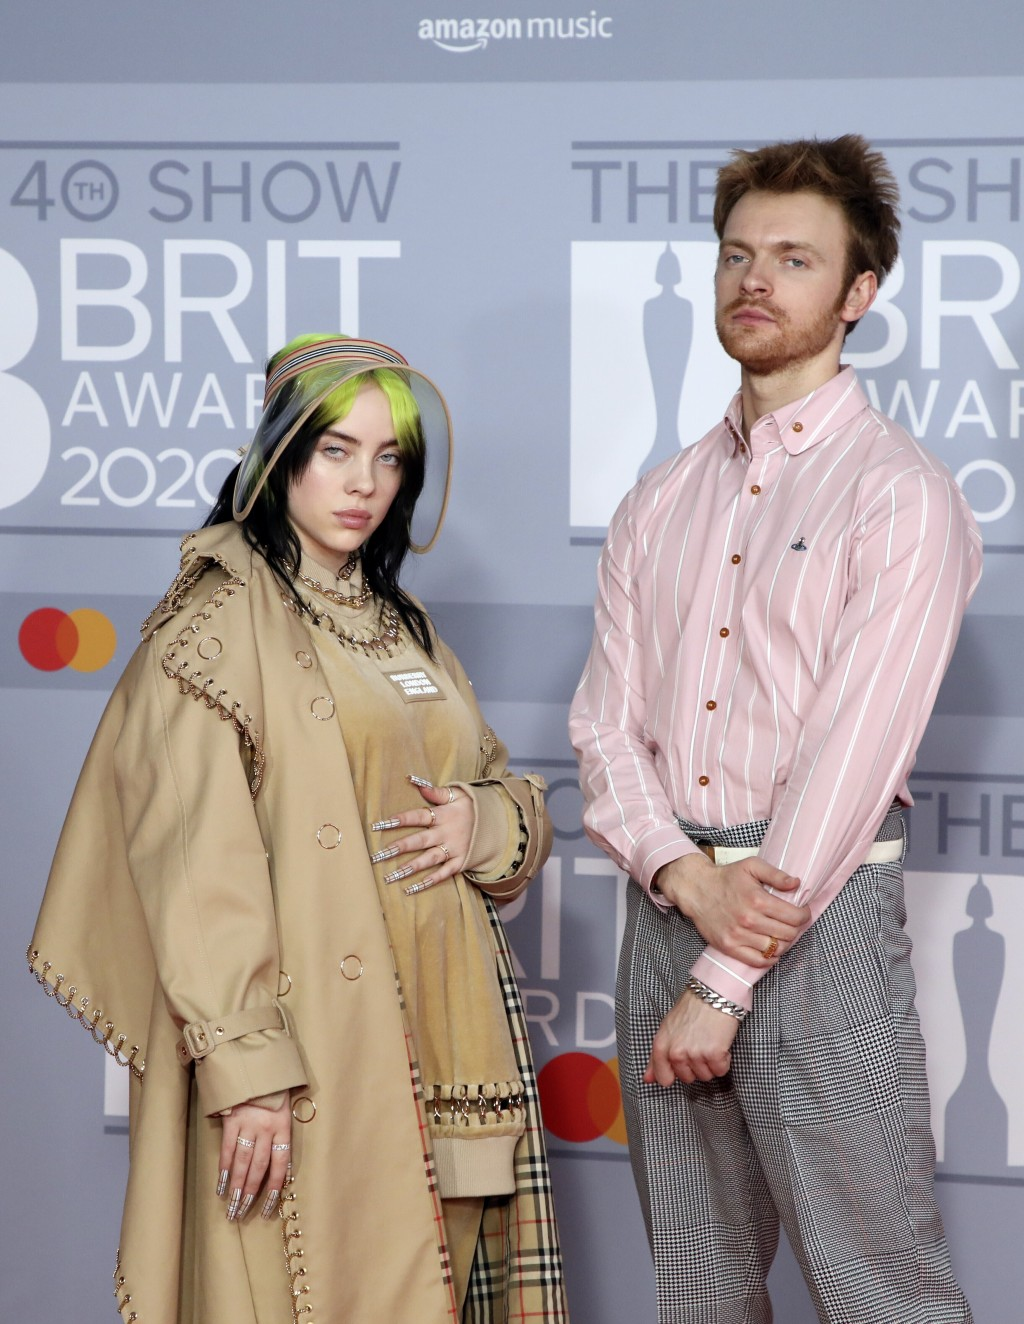 FILE - Billie Eilish, left, and Finneas O'Connell arrive at Brit Awards 2020 in London on Feb. 18, 2020.  O'Connell has been named one of The Associat...